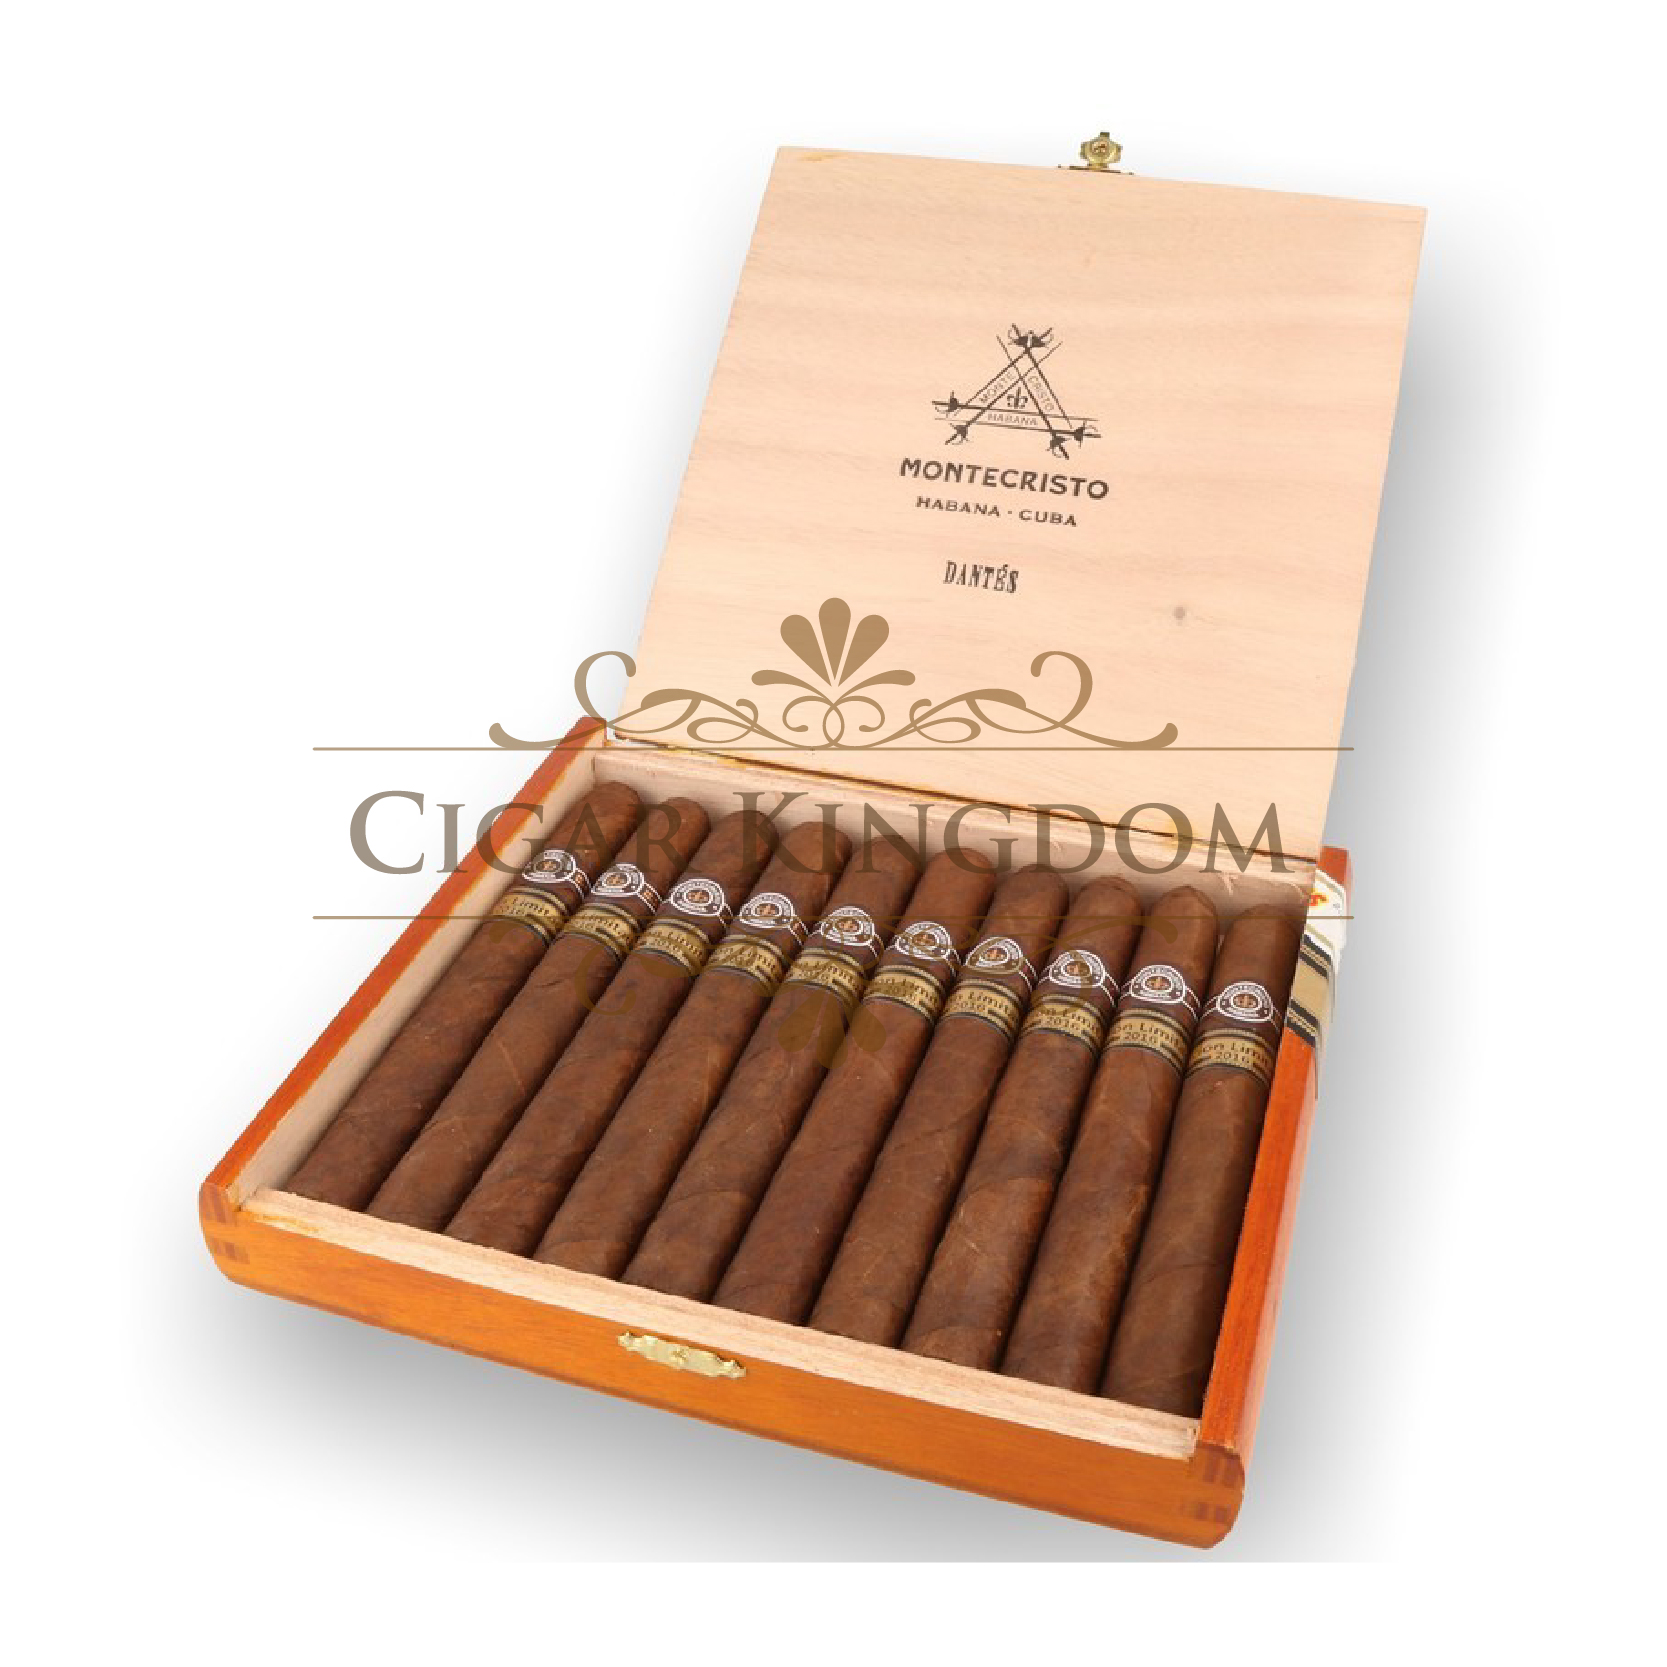 Montecristo - Dantes Limited Edition 2016 (Pack of 10s)